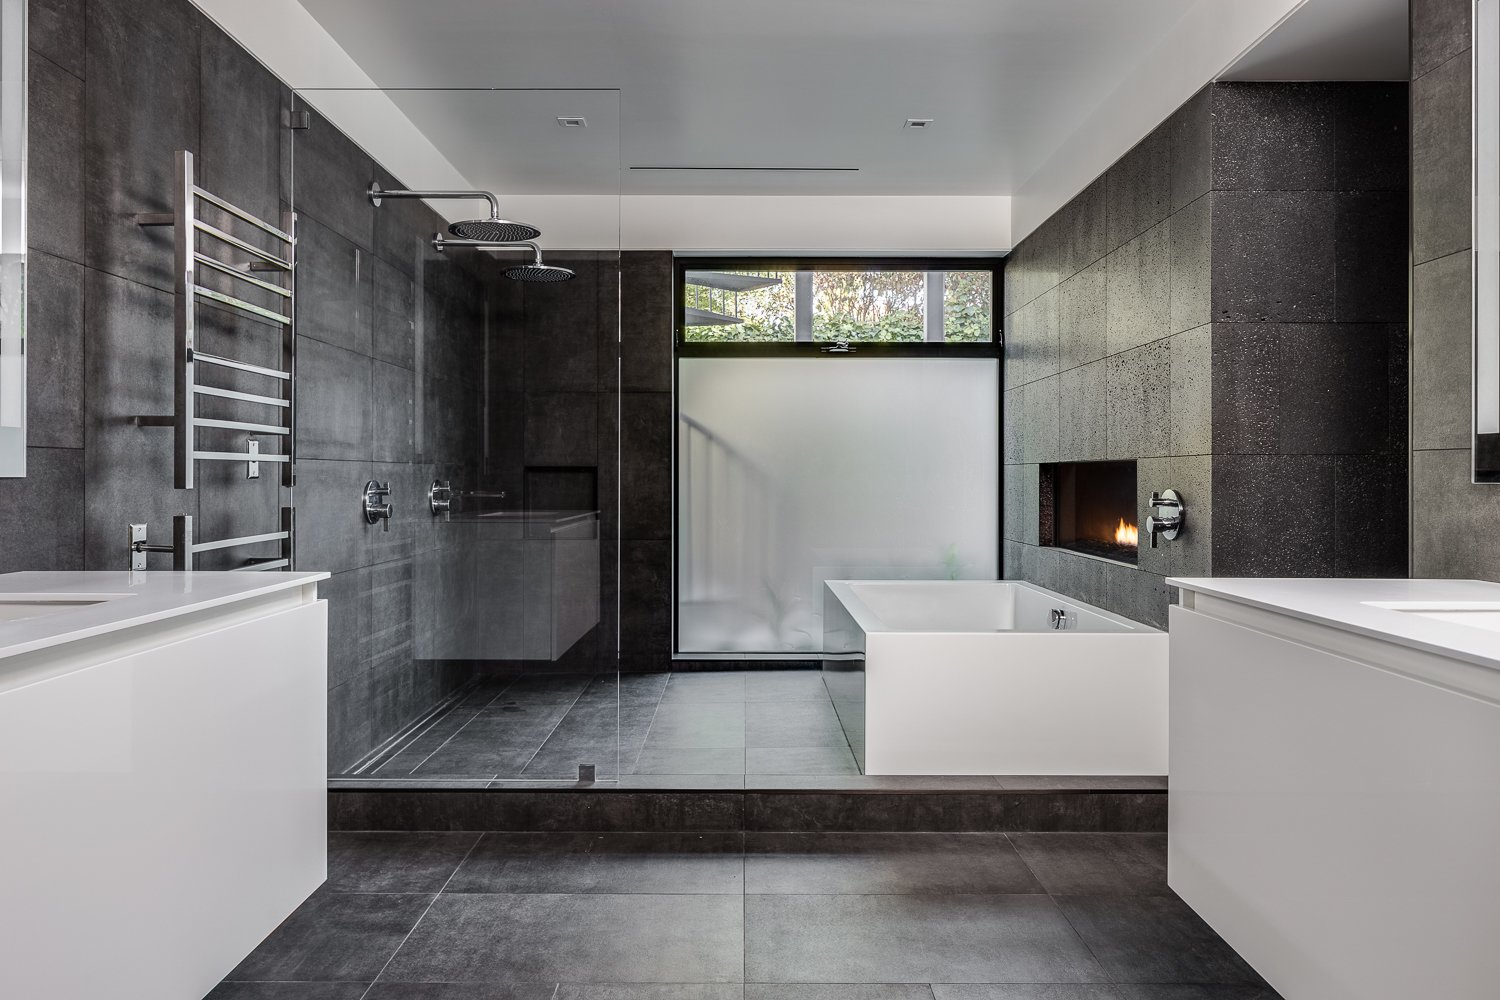 Bath, Porcelain Tile, Drop In, Soaking, Open, Recessed, and Porcelain Tile Master Bathroom - soaking tub w/ linear fireplace - White thermafoil floating vanities, Duravit and Hansgrohe fixtures, Large-format Italian porcelain tile from Emil Ceramica  Best Bath Open Porcelain Tile Photos from Castro Residence